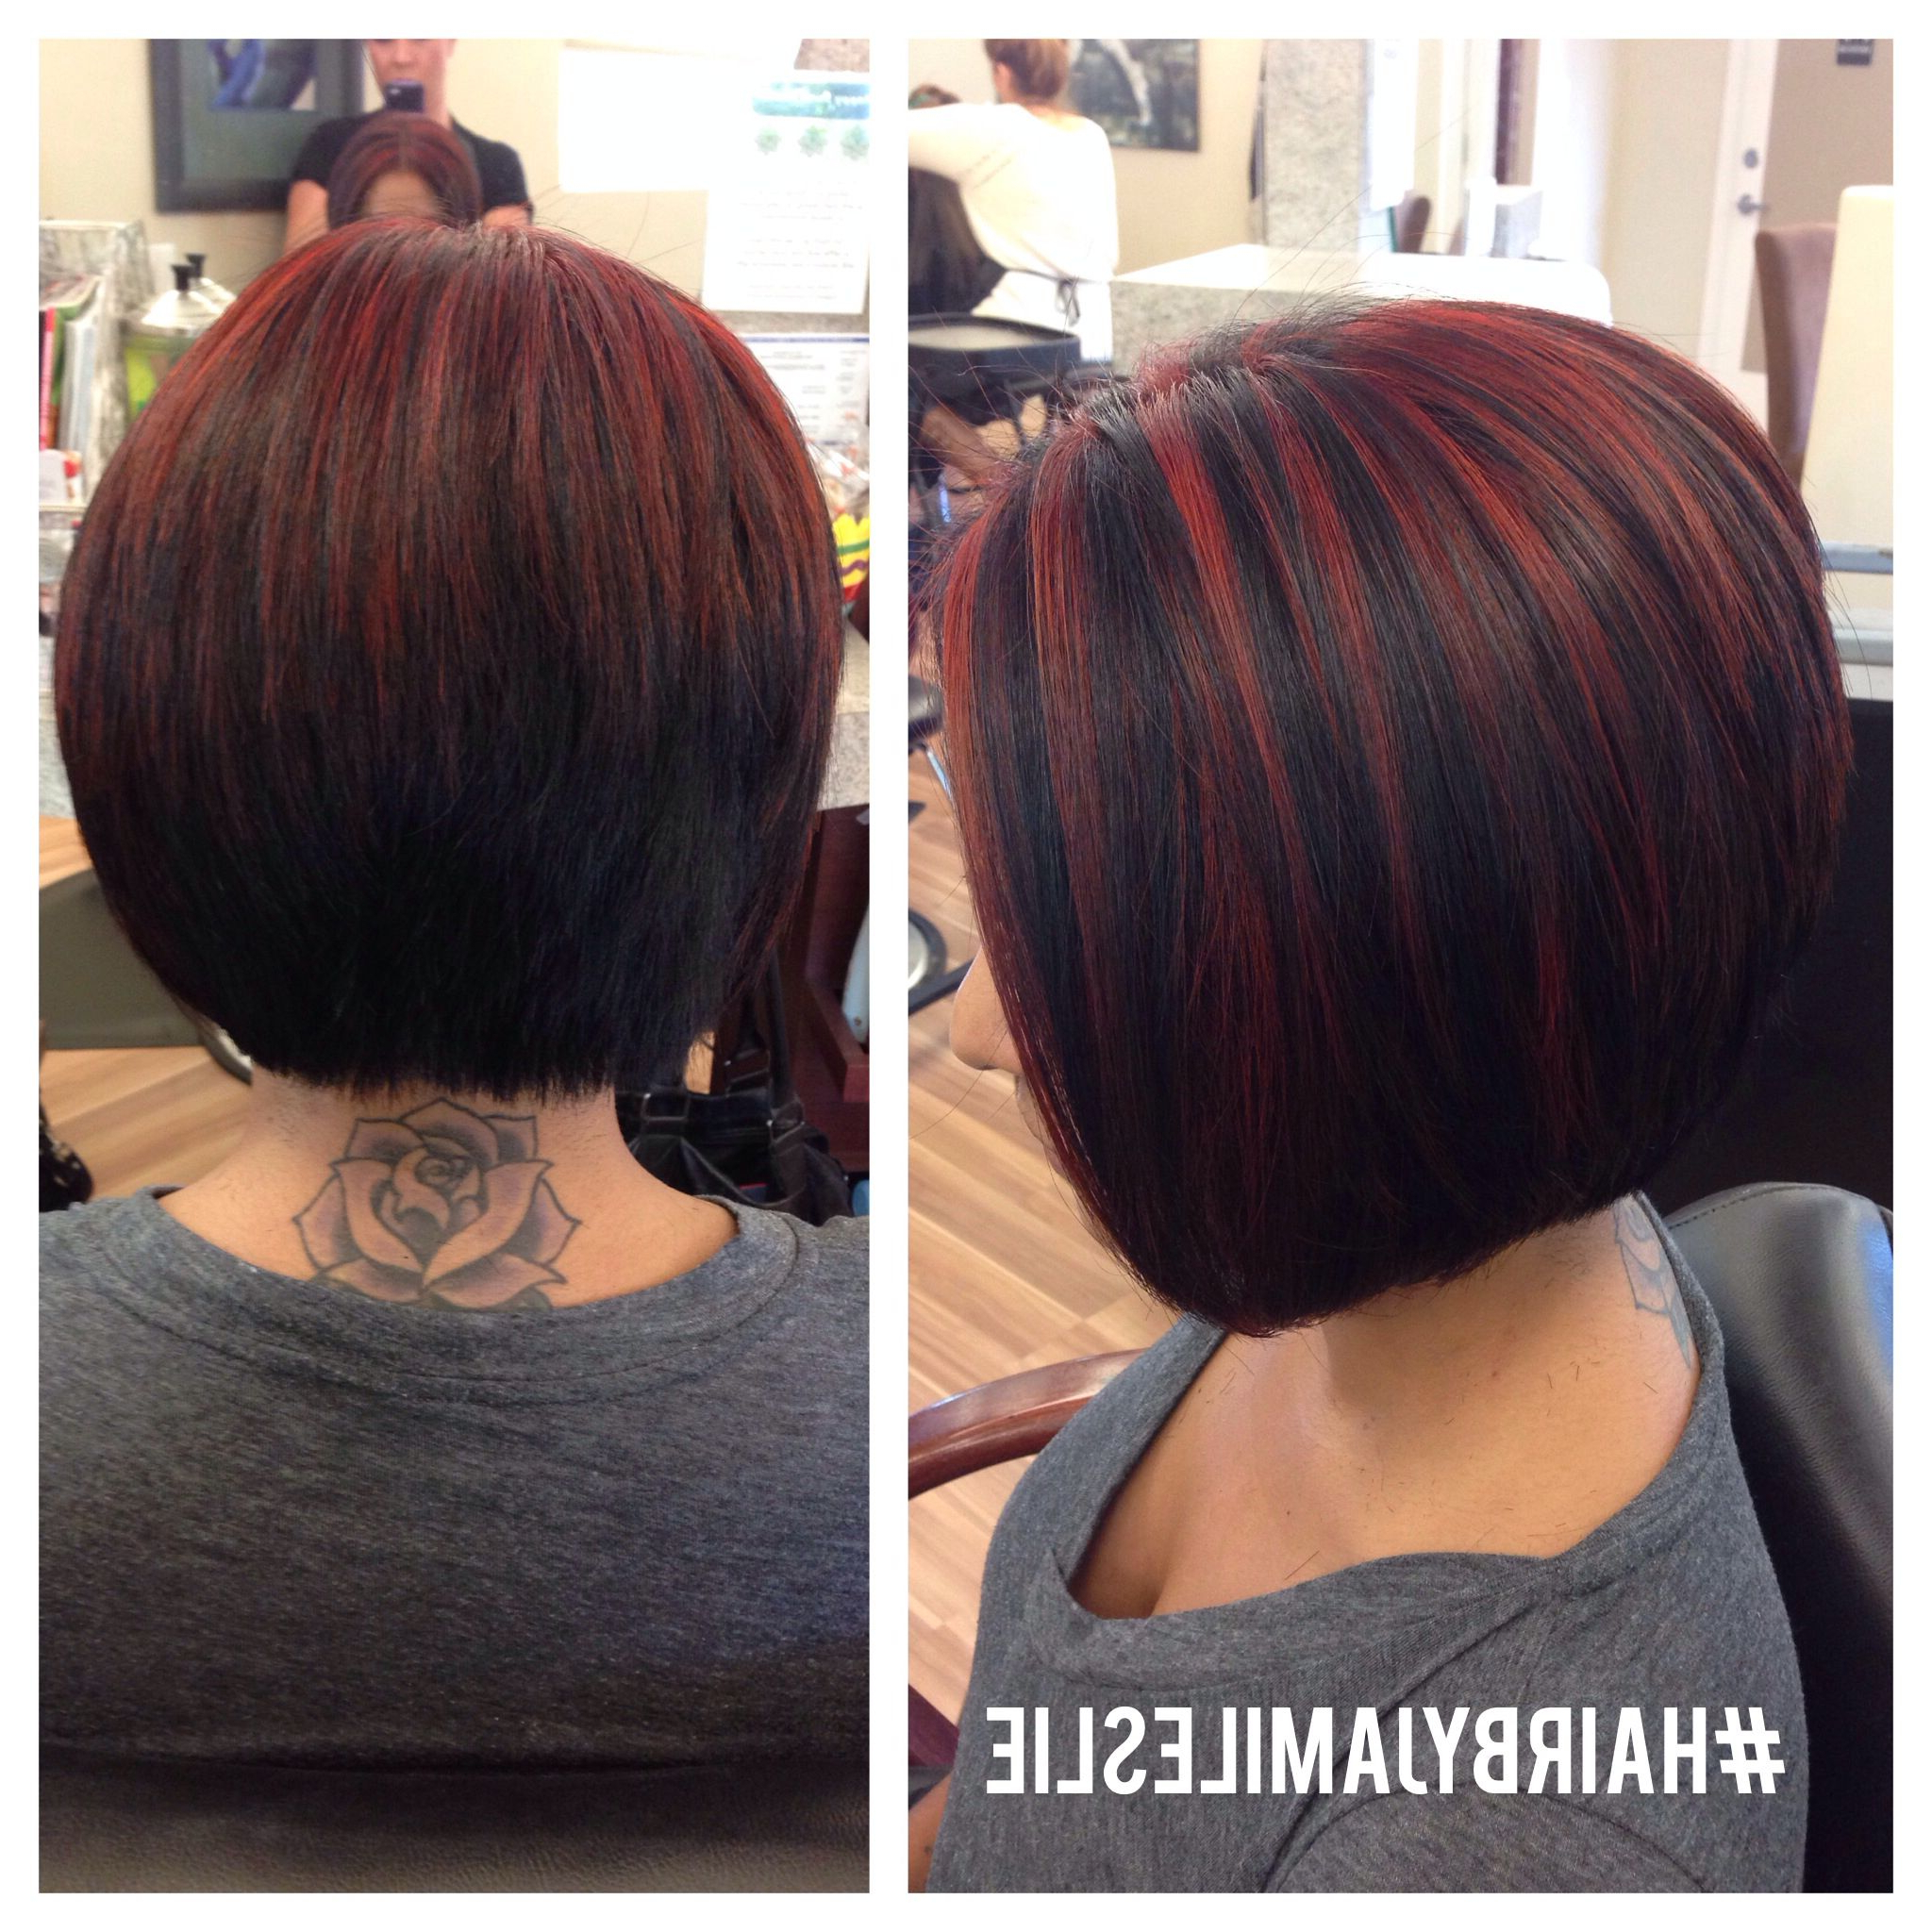 An Adorable Stacked A Line Bob With Red Highlights! Hairjami Inside Burnt Orange Bob Hairstyles With Highlights (View 6 of 20)